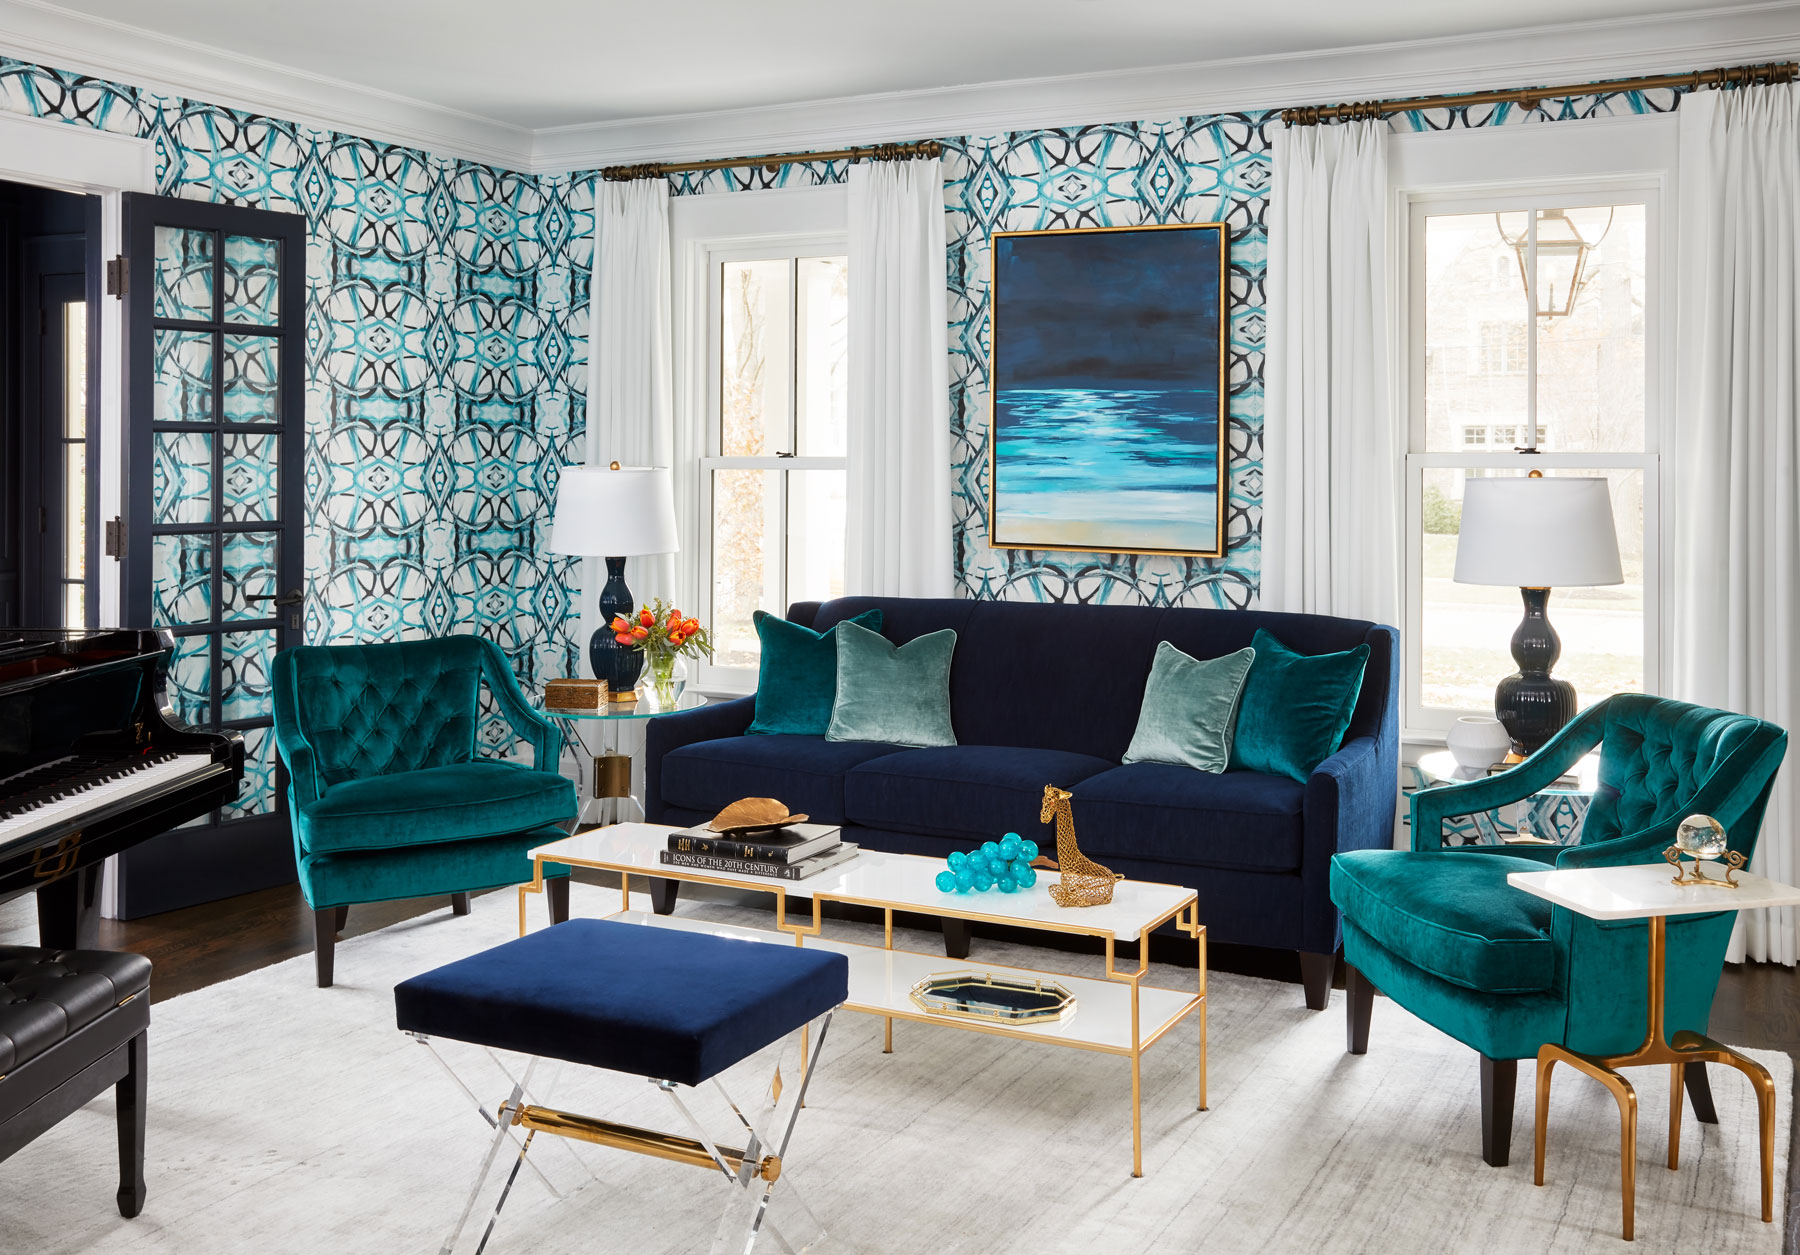 The foyer connects to a formal living space, which the homeowners use for entertaining. Both rooms are rich with blue tones.